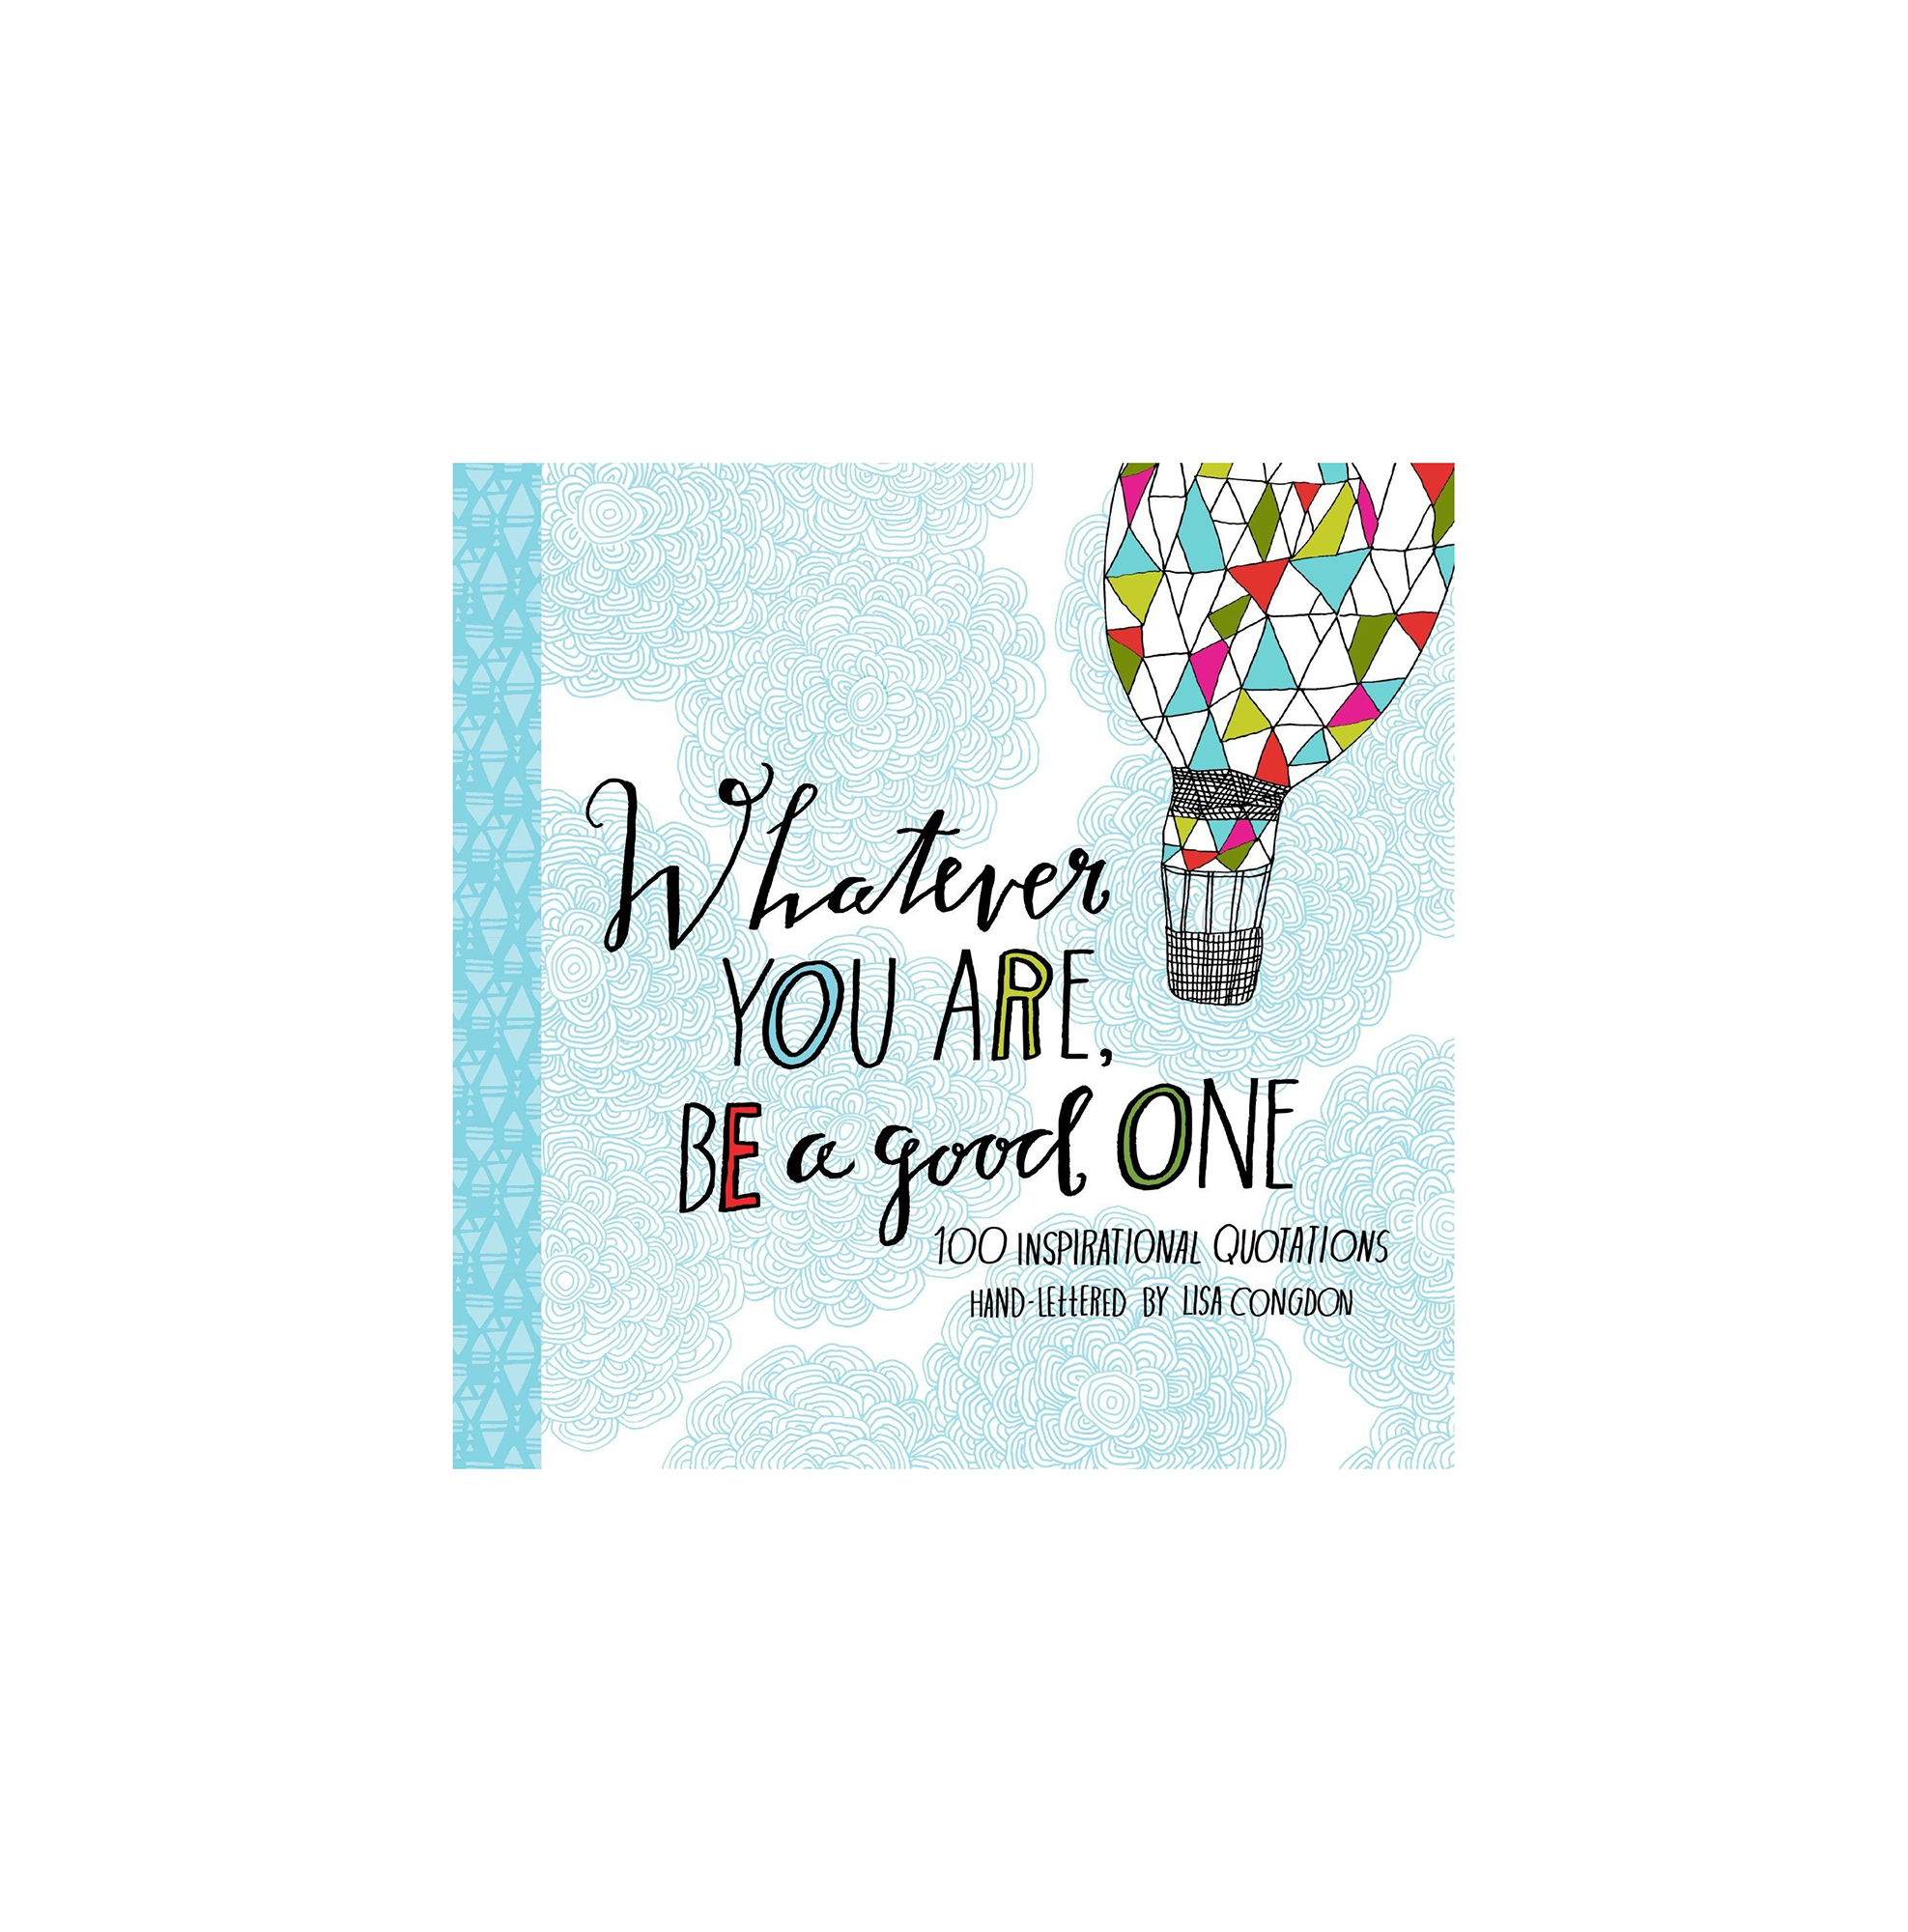 Whatever You Are, Be a Good One, by Lisa Congdon